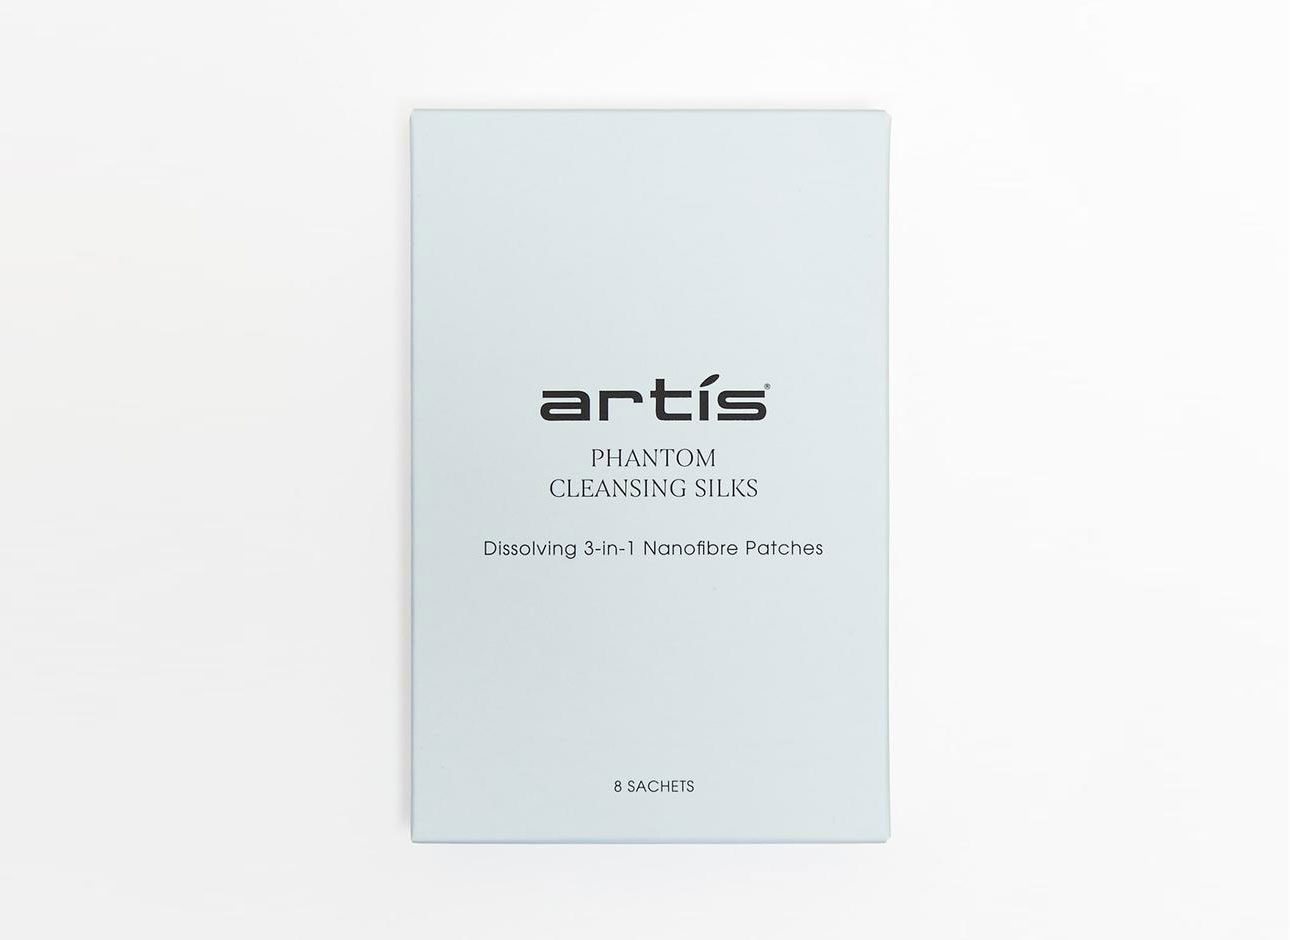 Artis Phantom Cleansing Silks